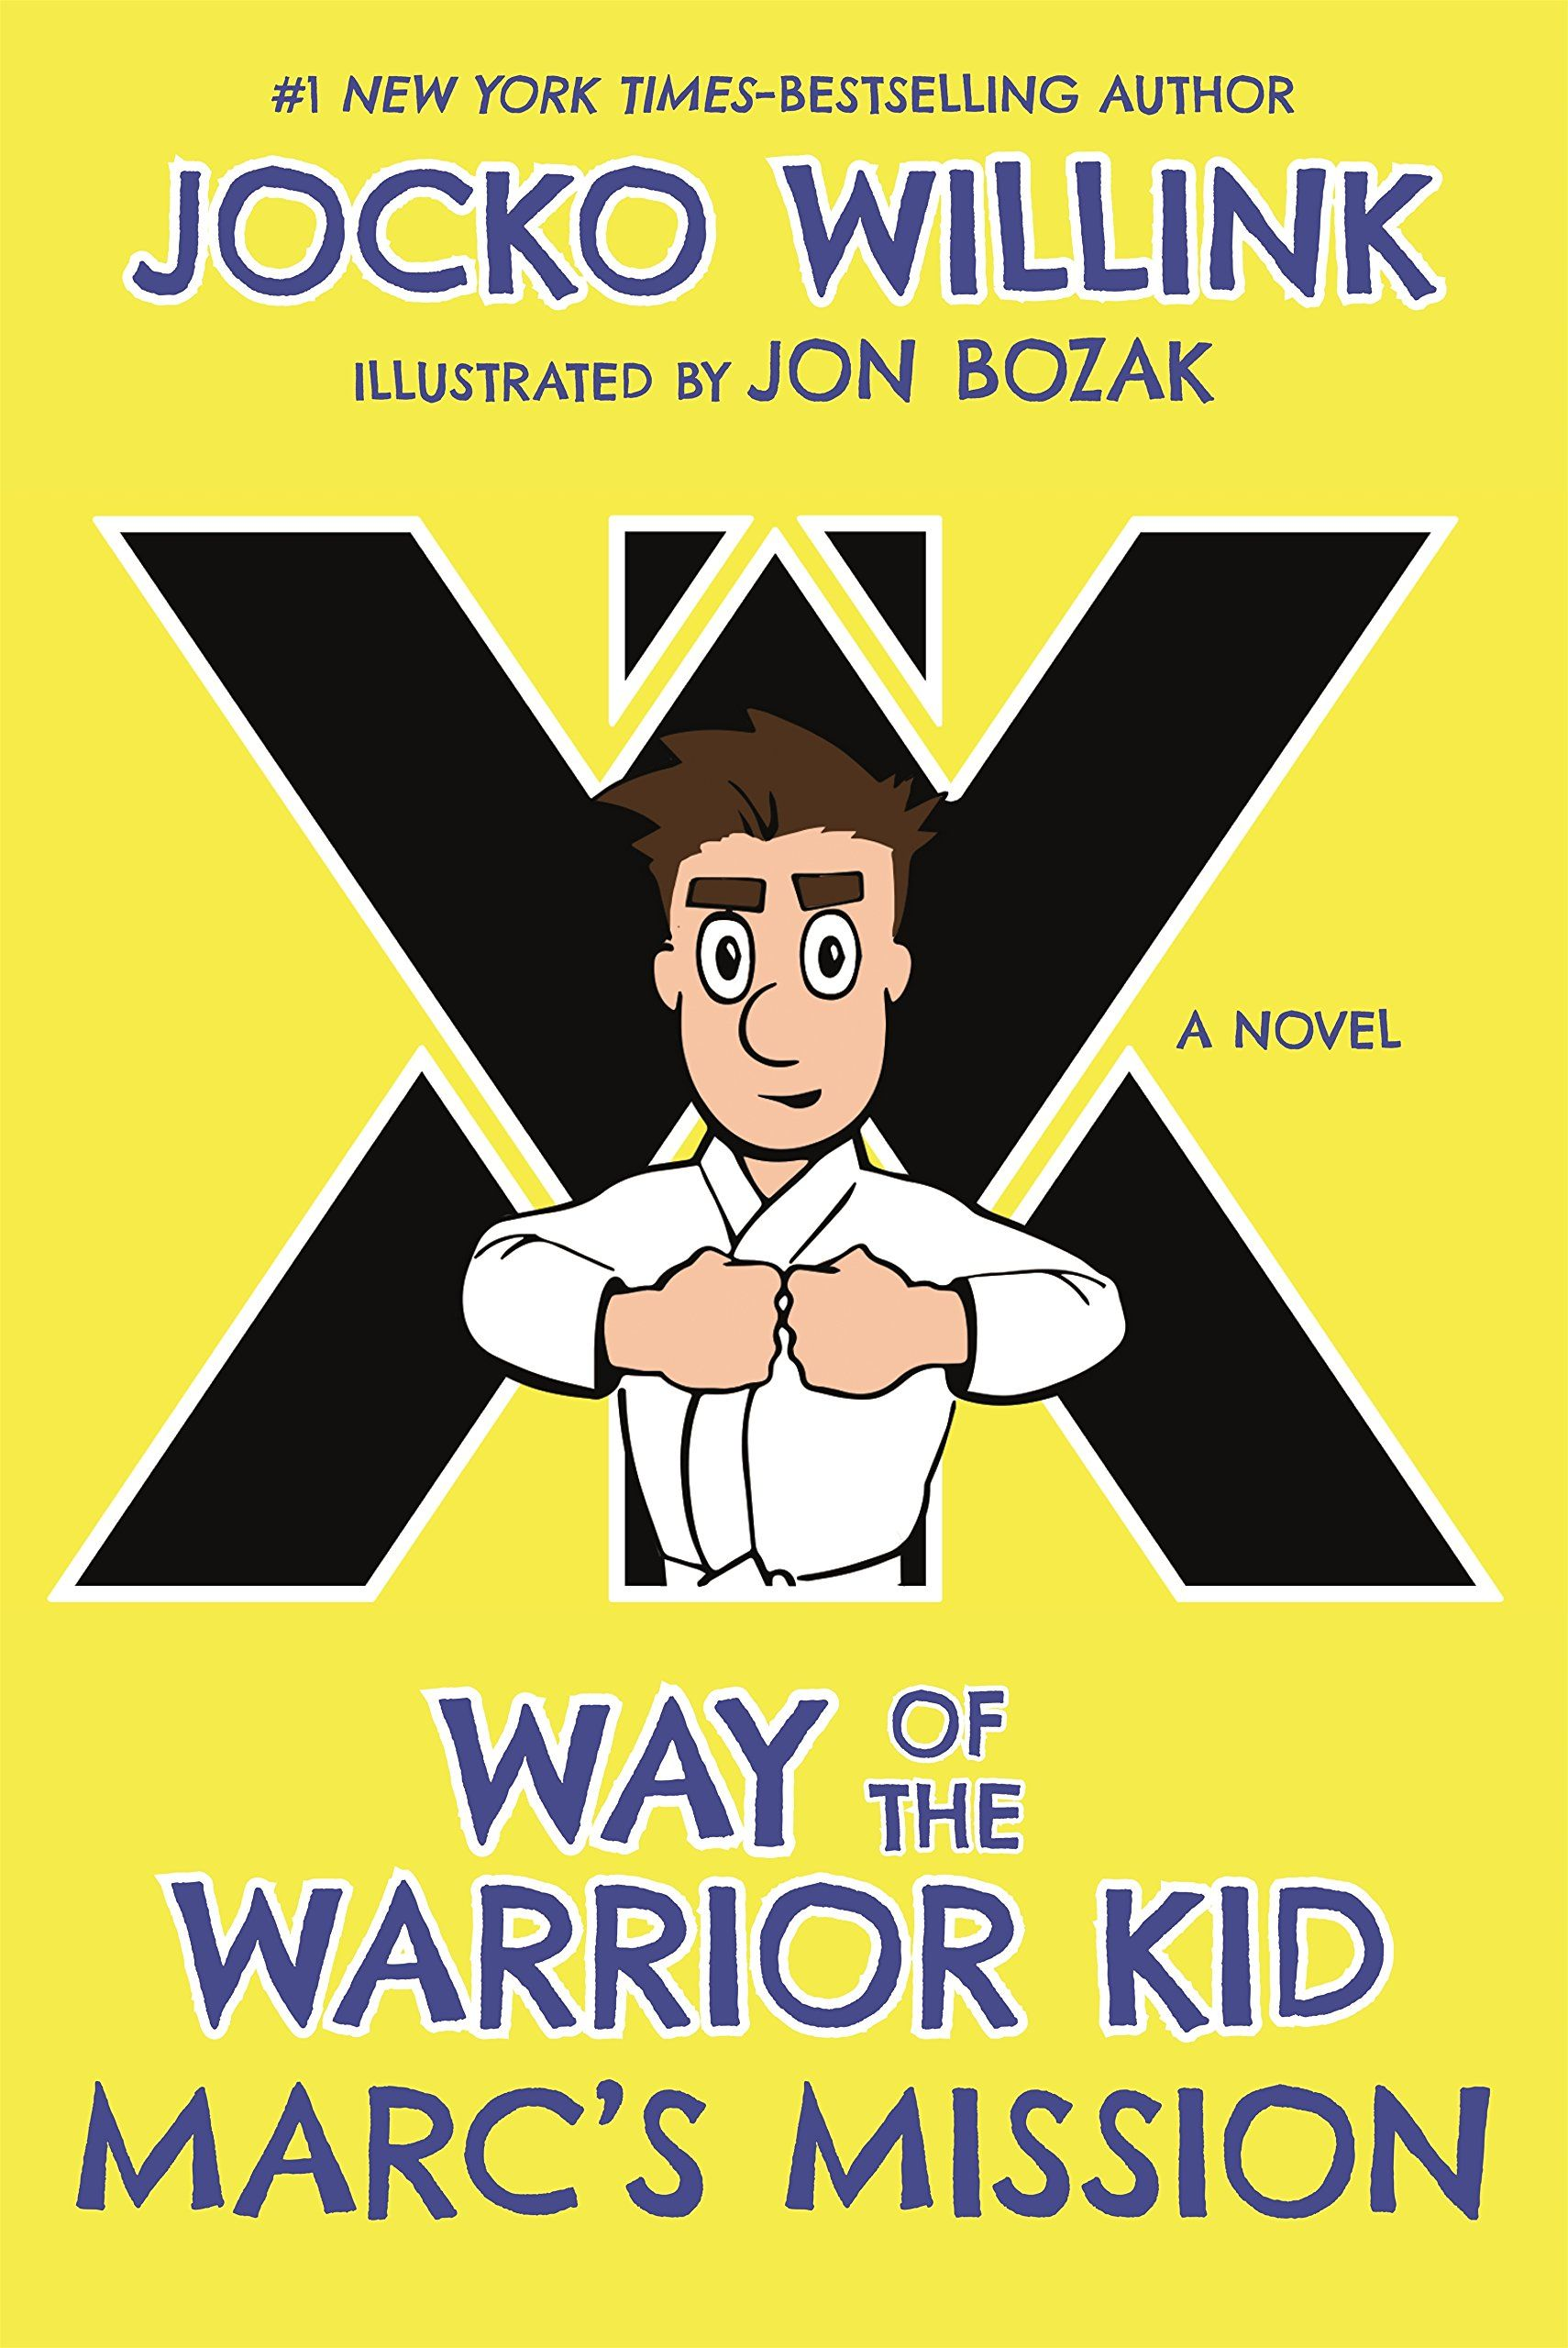 Marc's Mission: Way of the Warrior Kid by Jocko Wilink